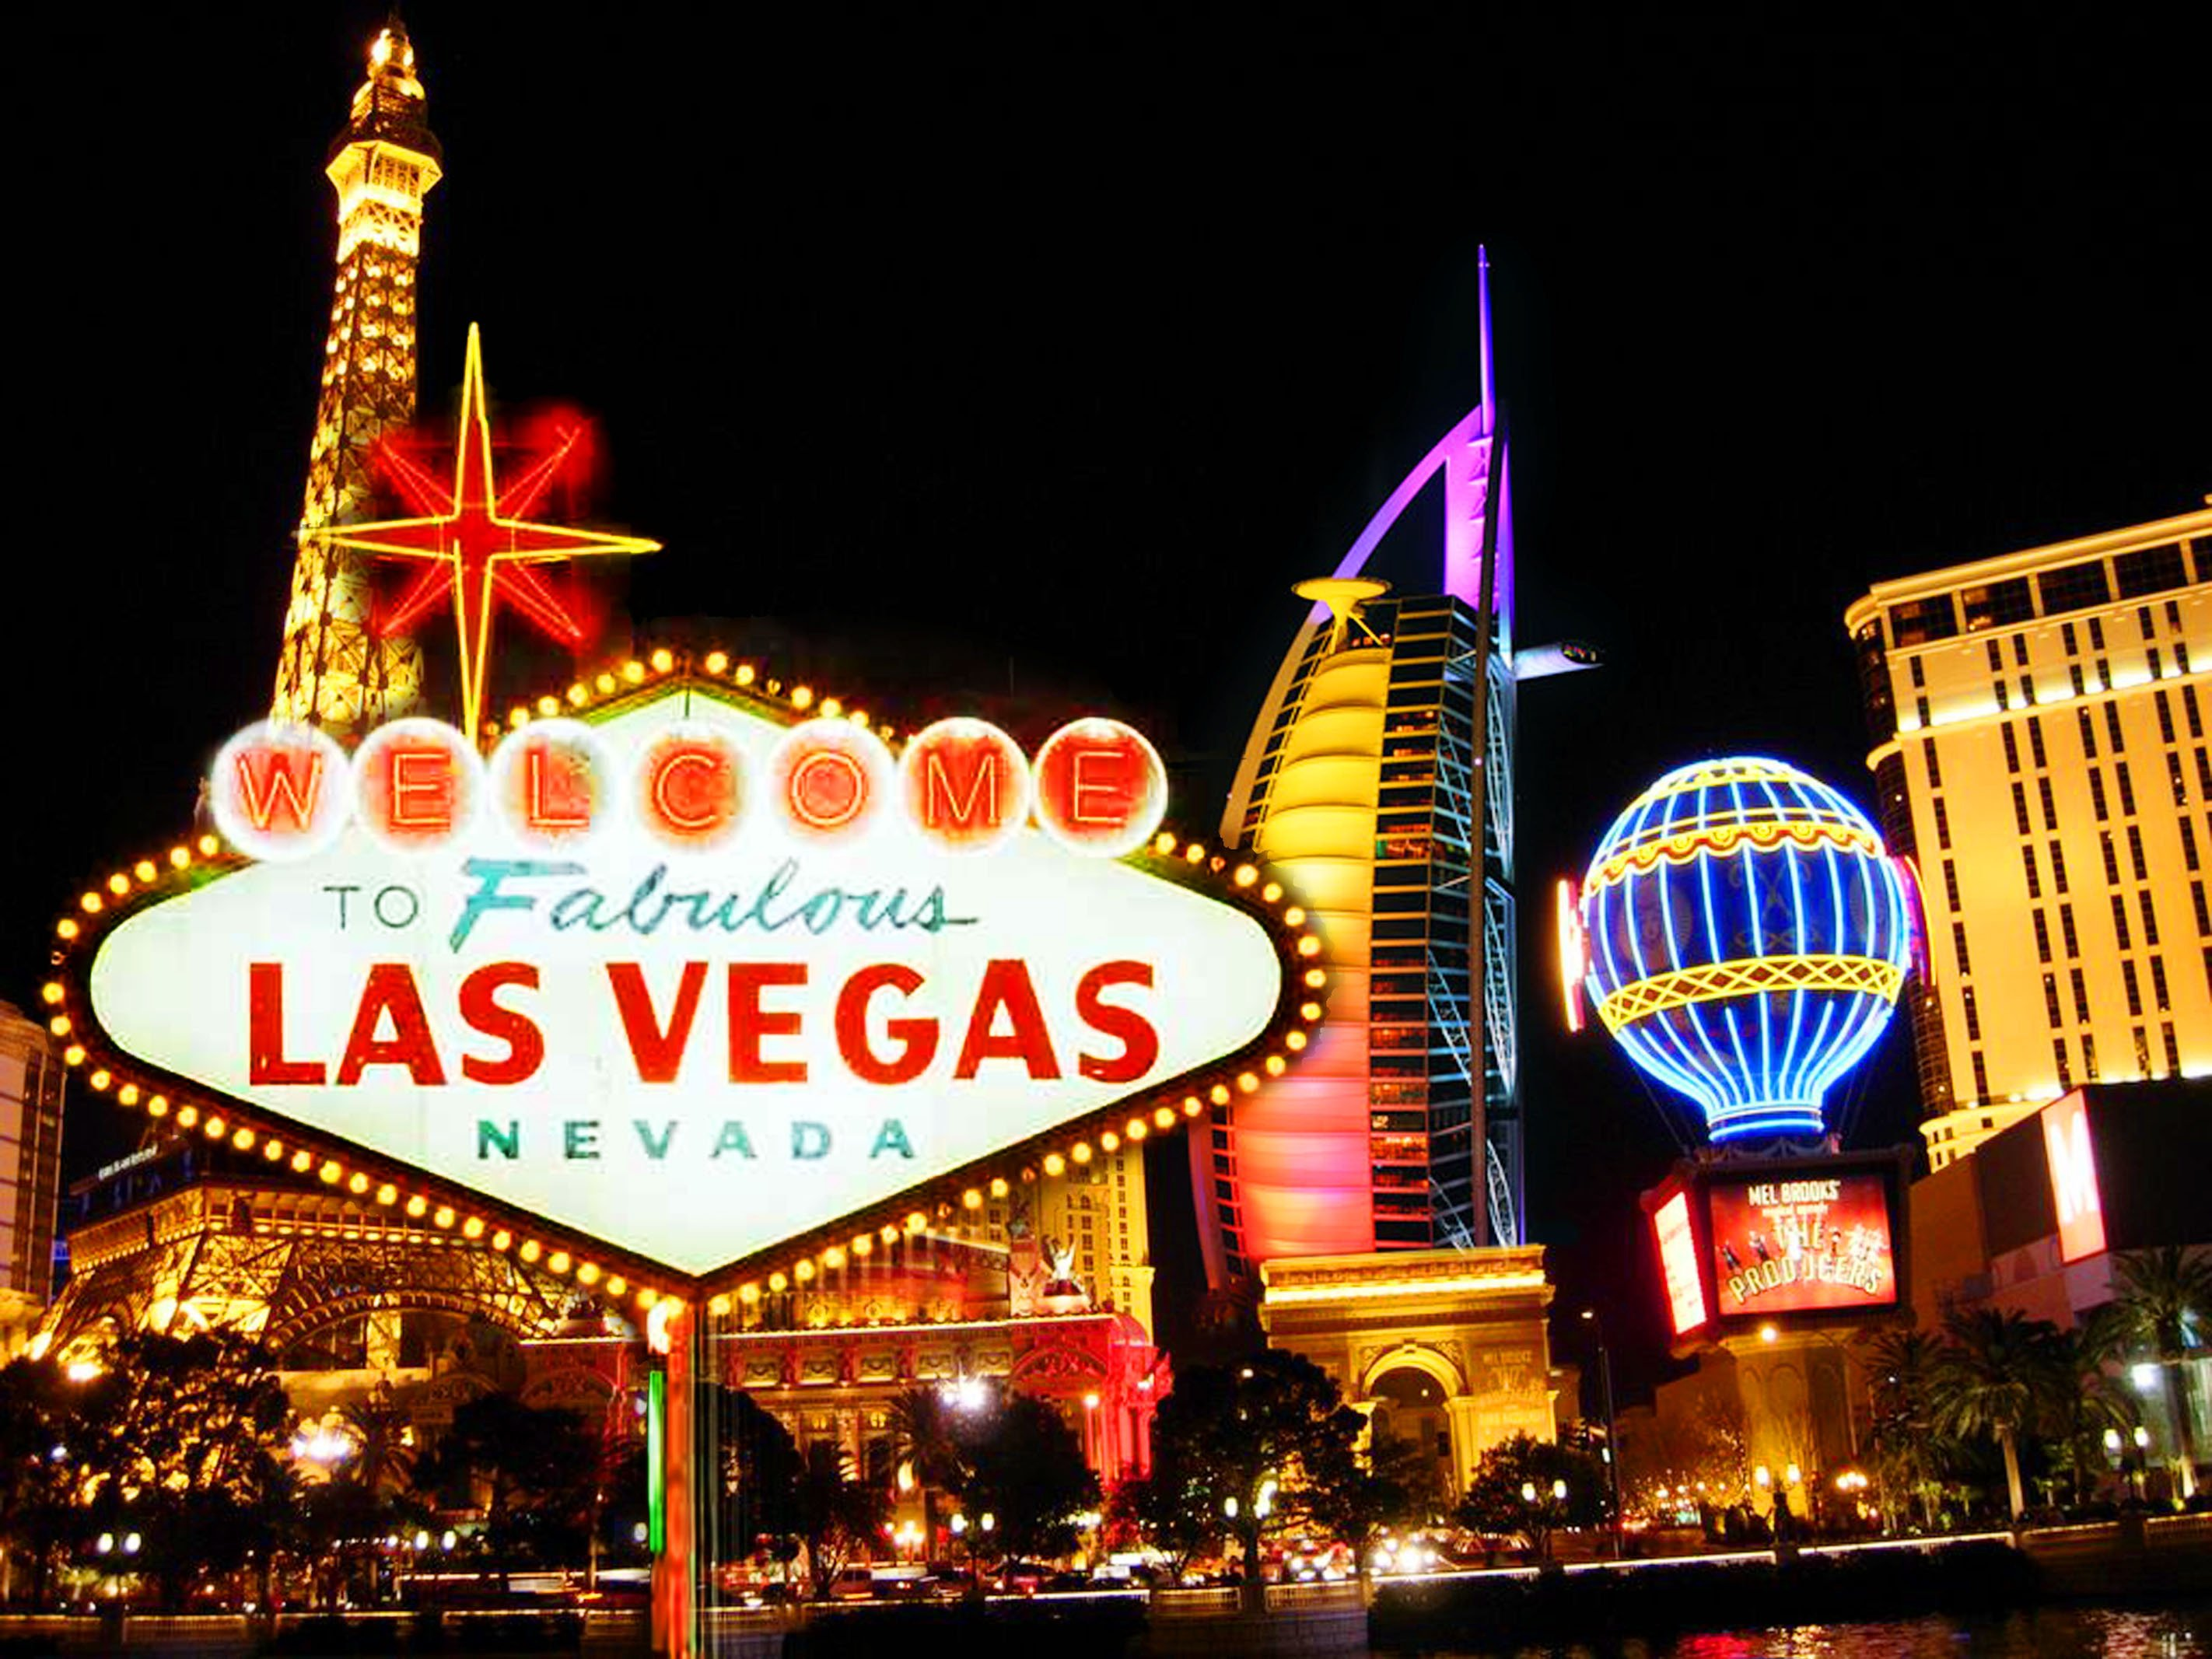 Hotels near Las Vegas Nevada